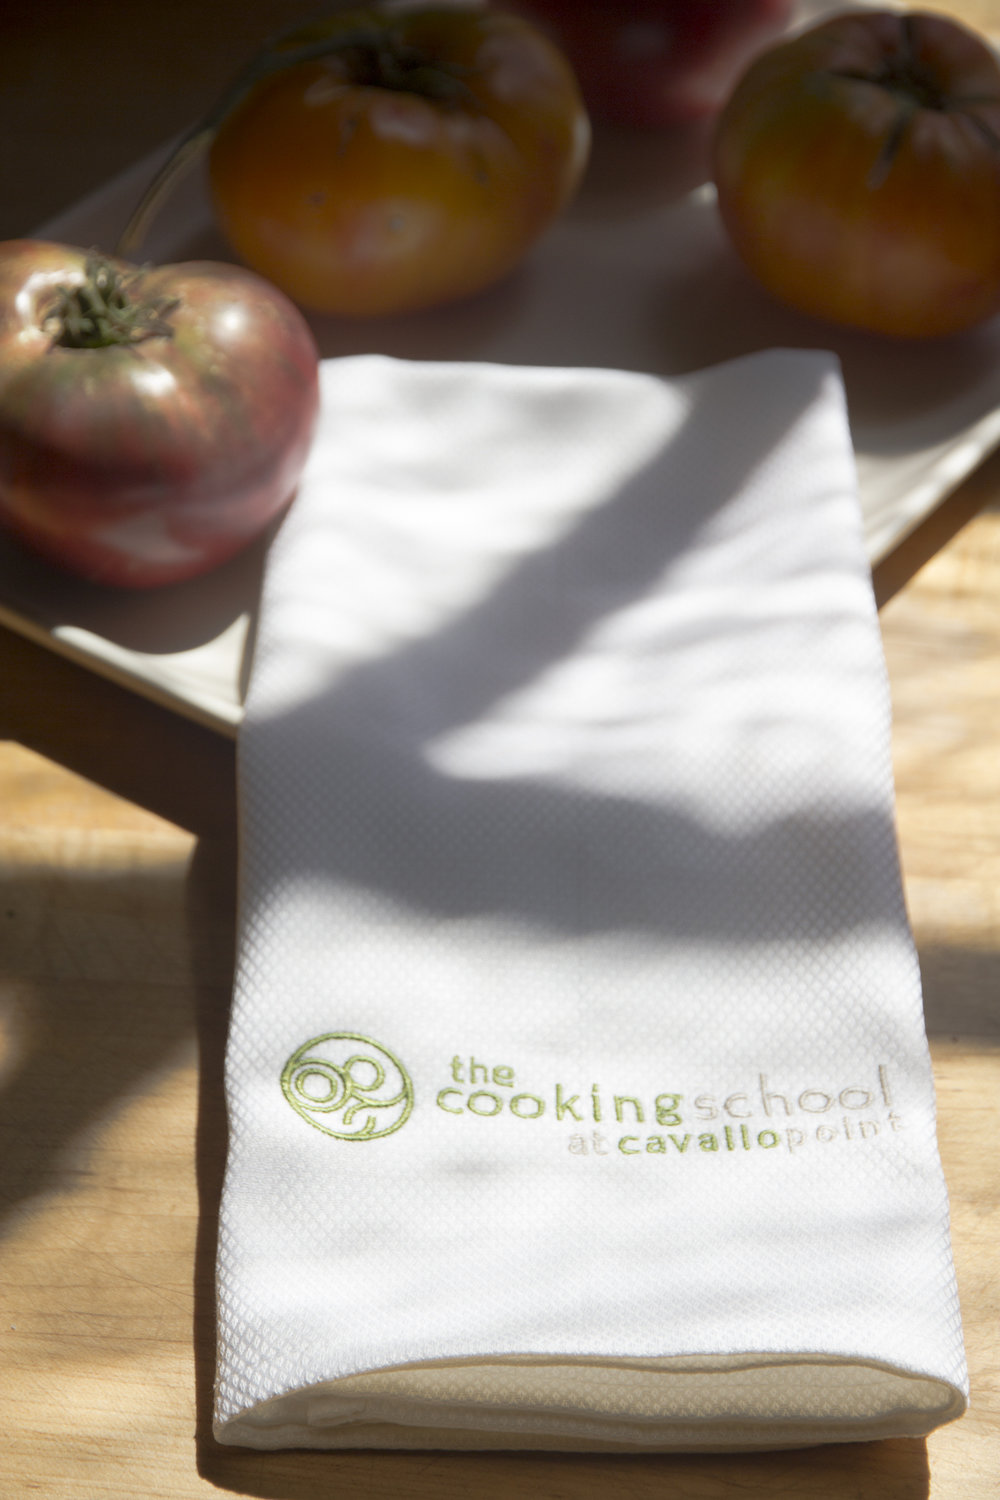 You may also like: - Cavallo Point & Cooking School Tea Towels